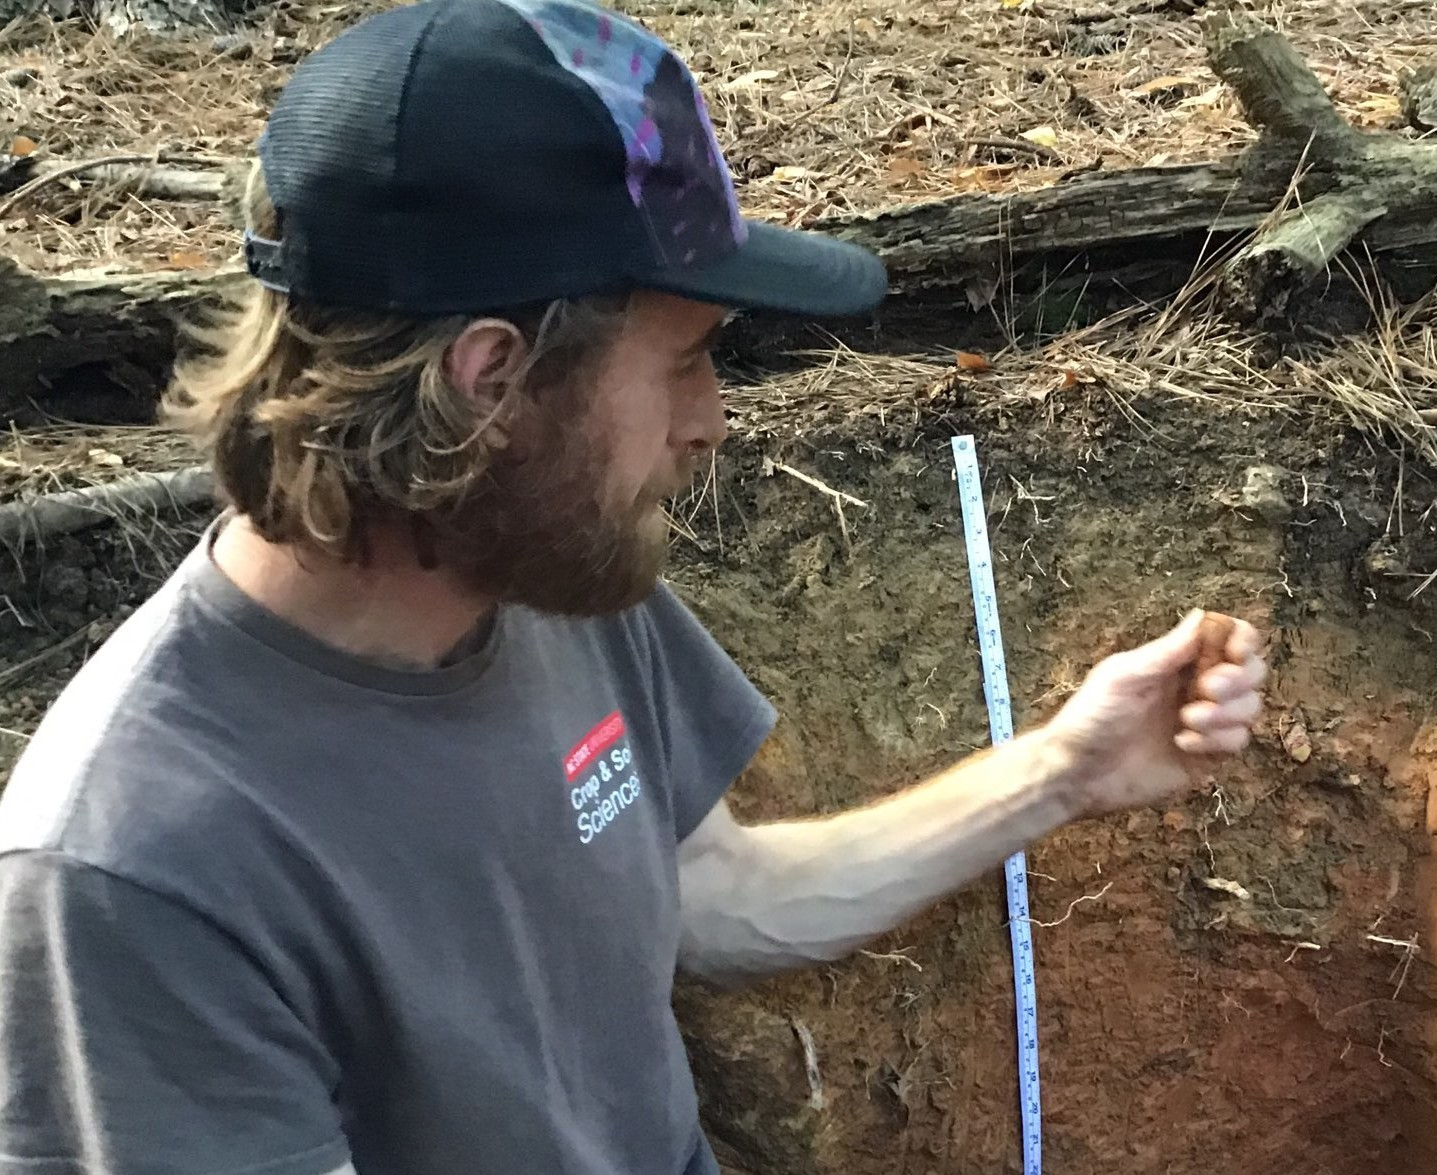 Man examines a soil sample for texture